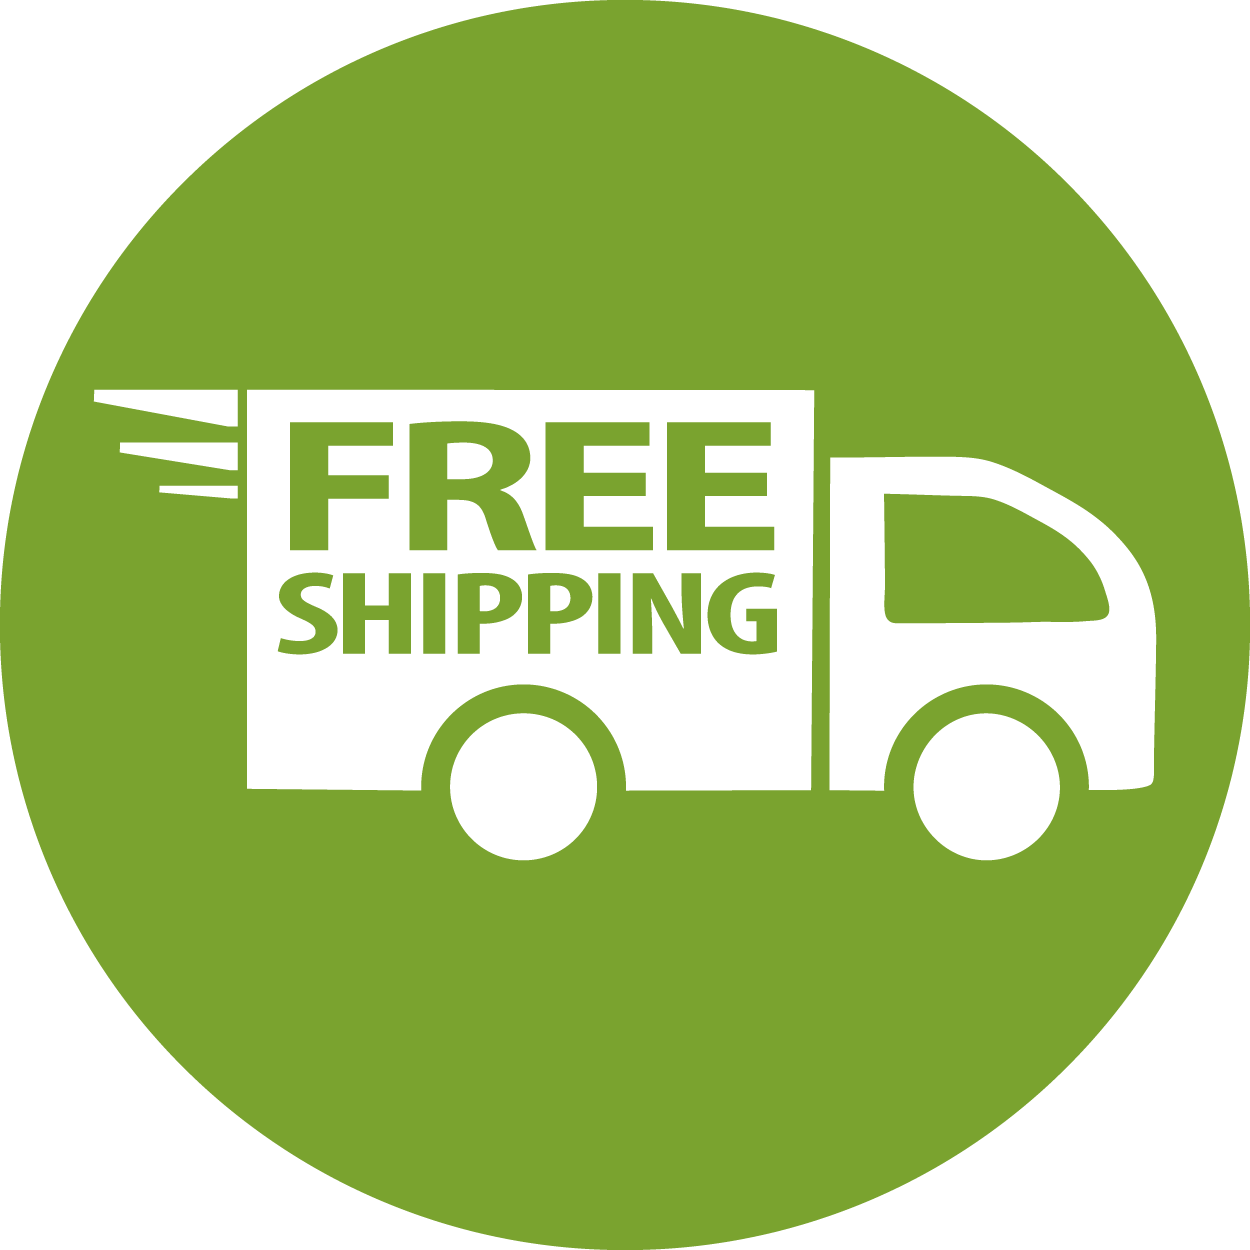 uploads free shipping free shipping PNG37 5